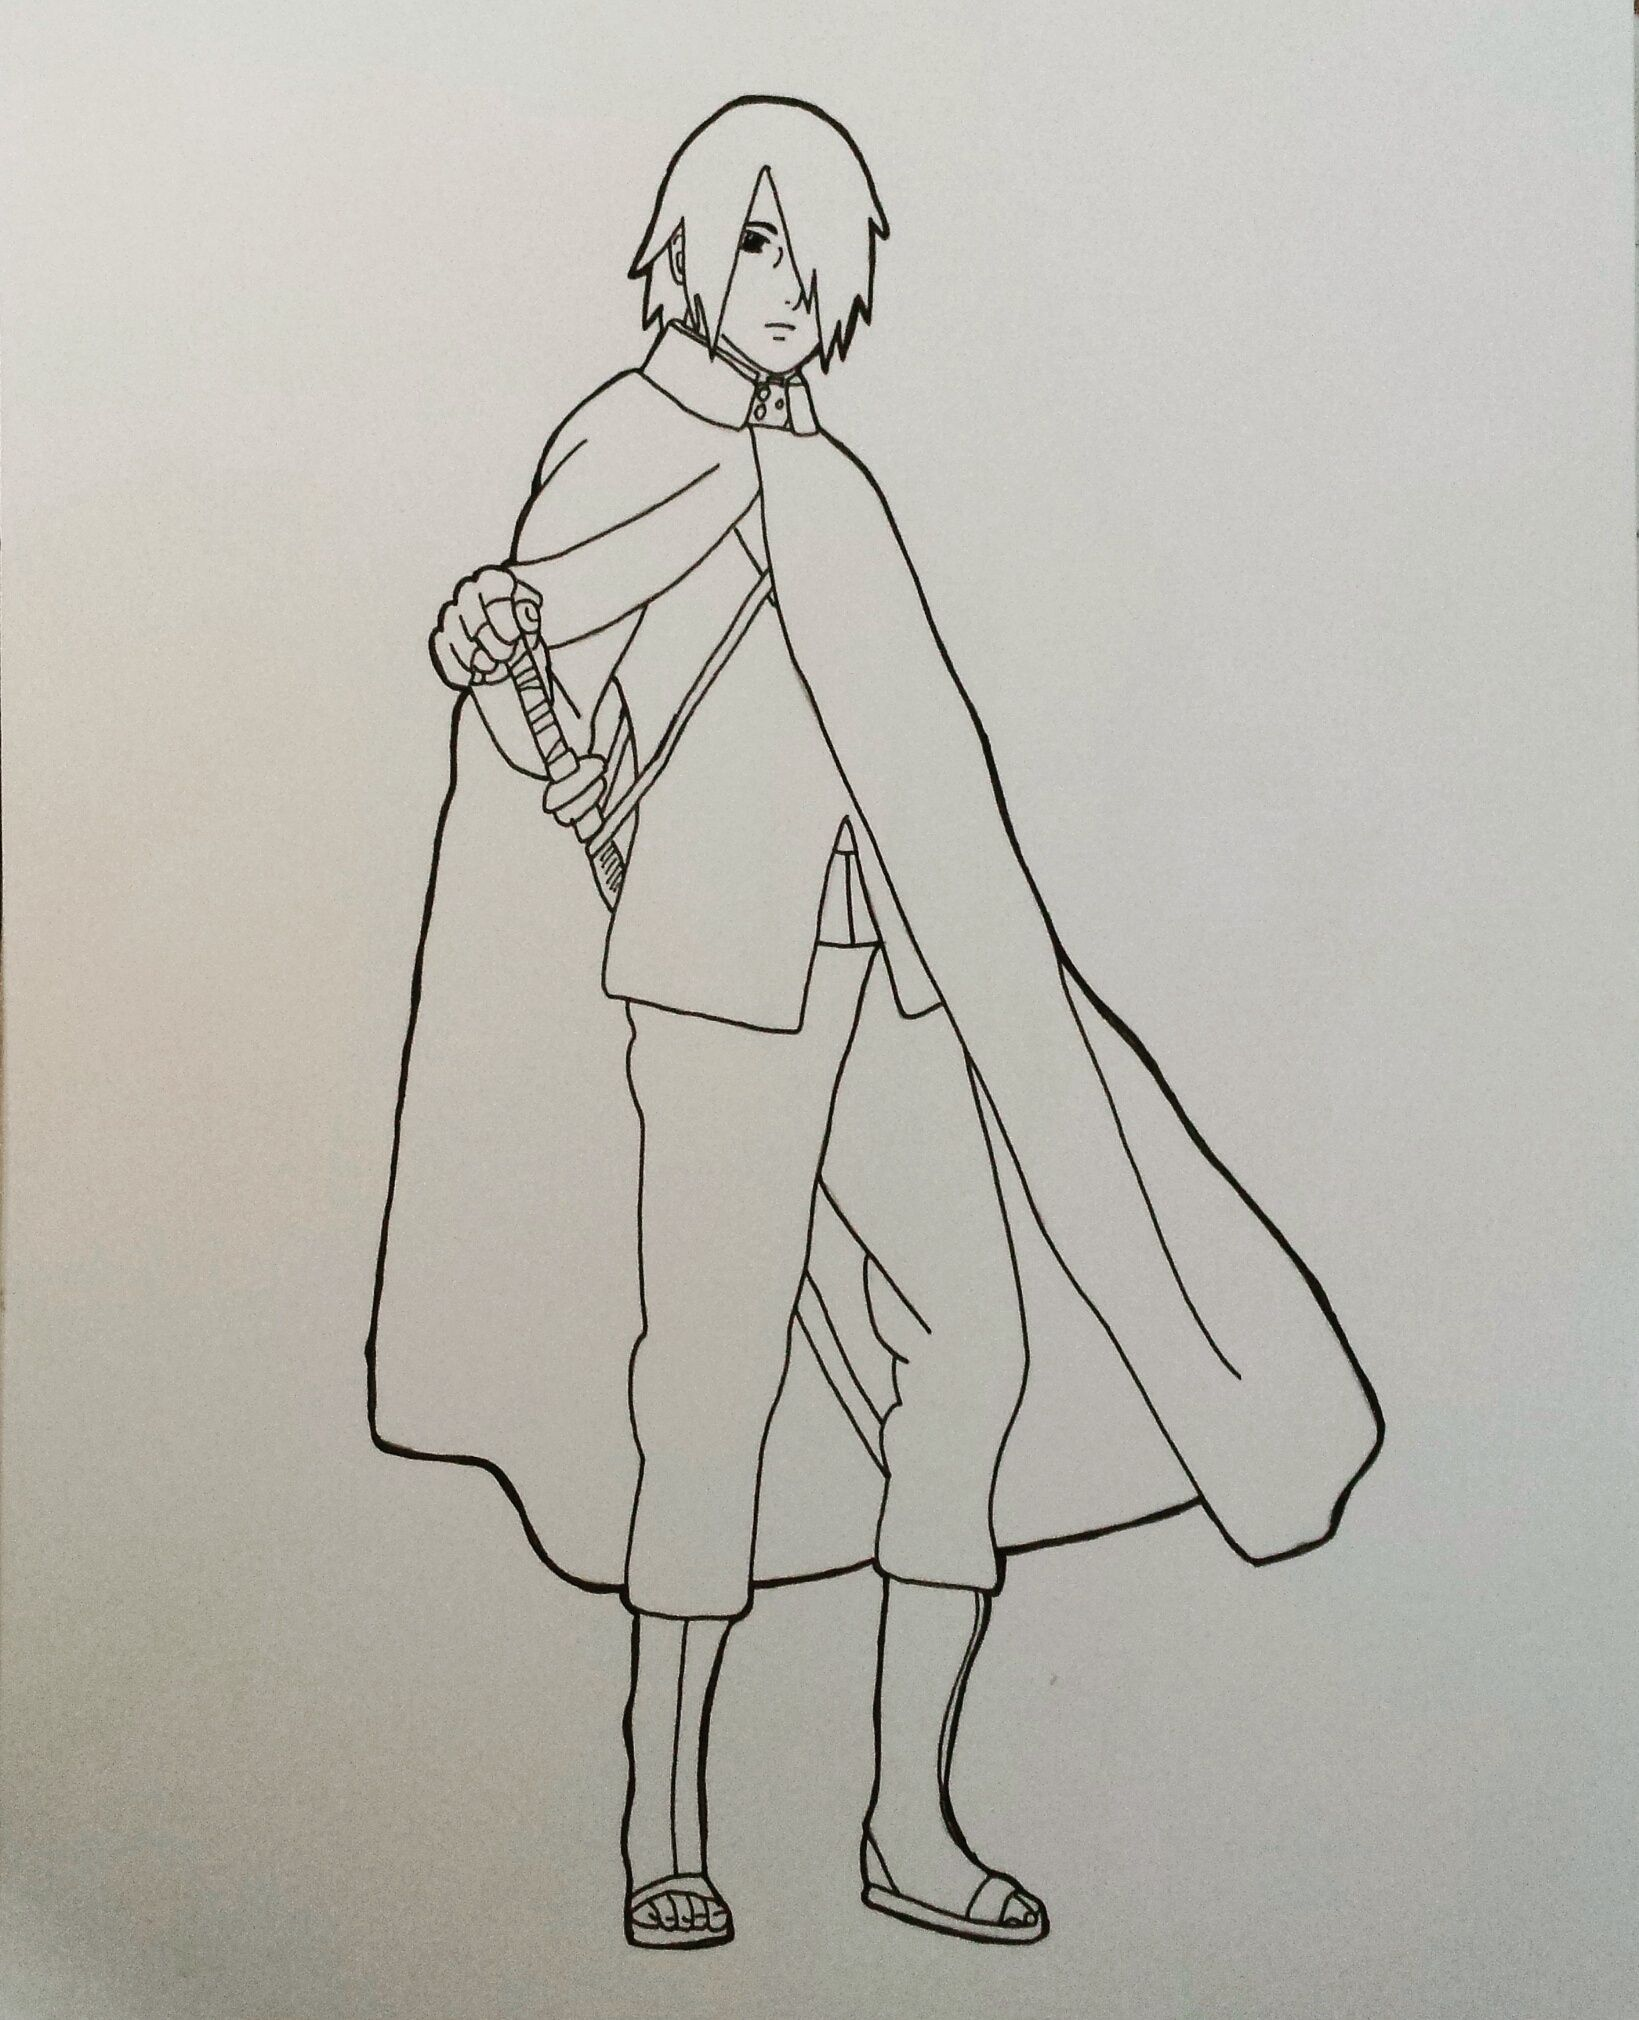 My Drawing Without Color Of Sasuke Uchiha From Boruto Naruto The